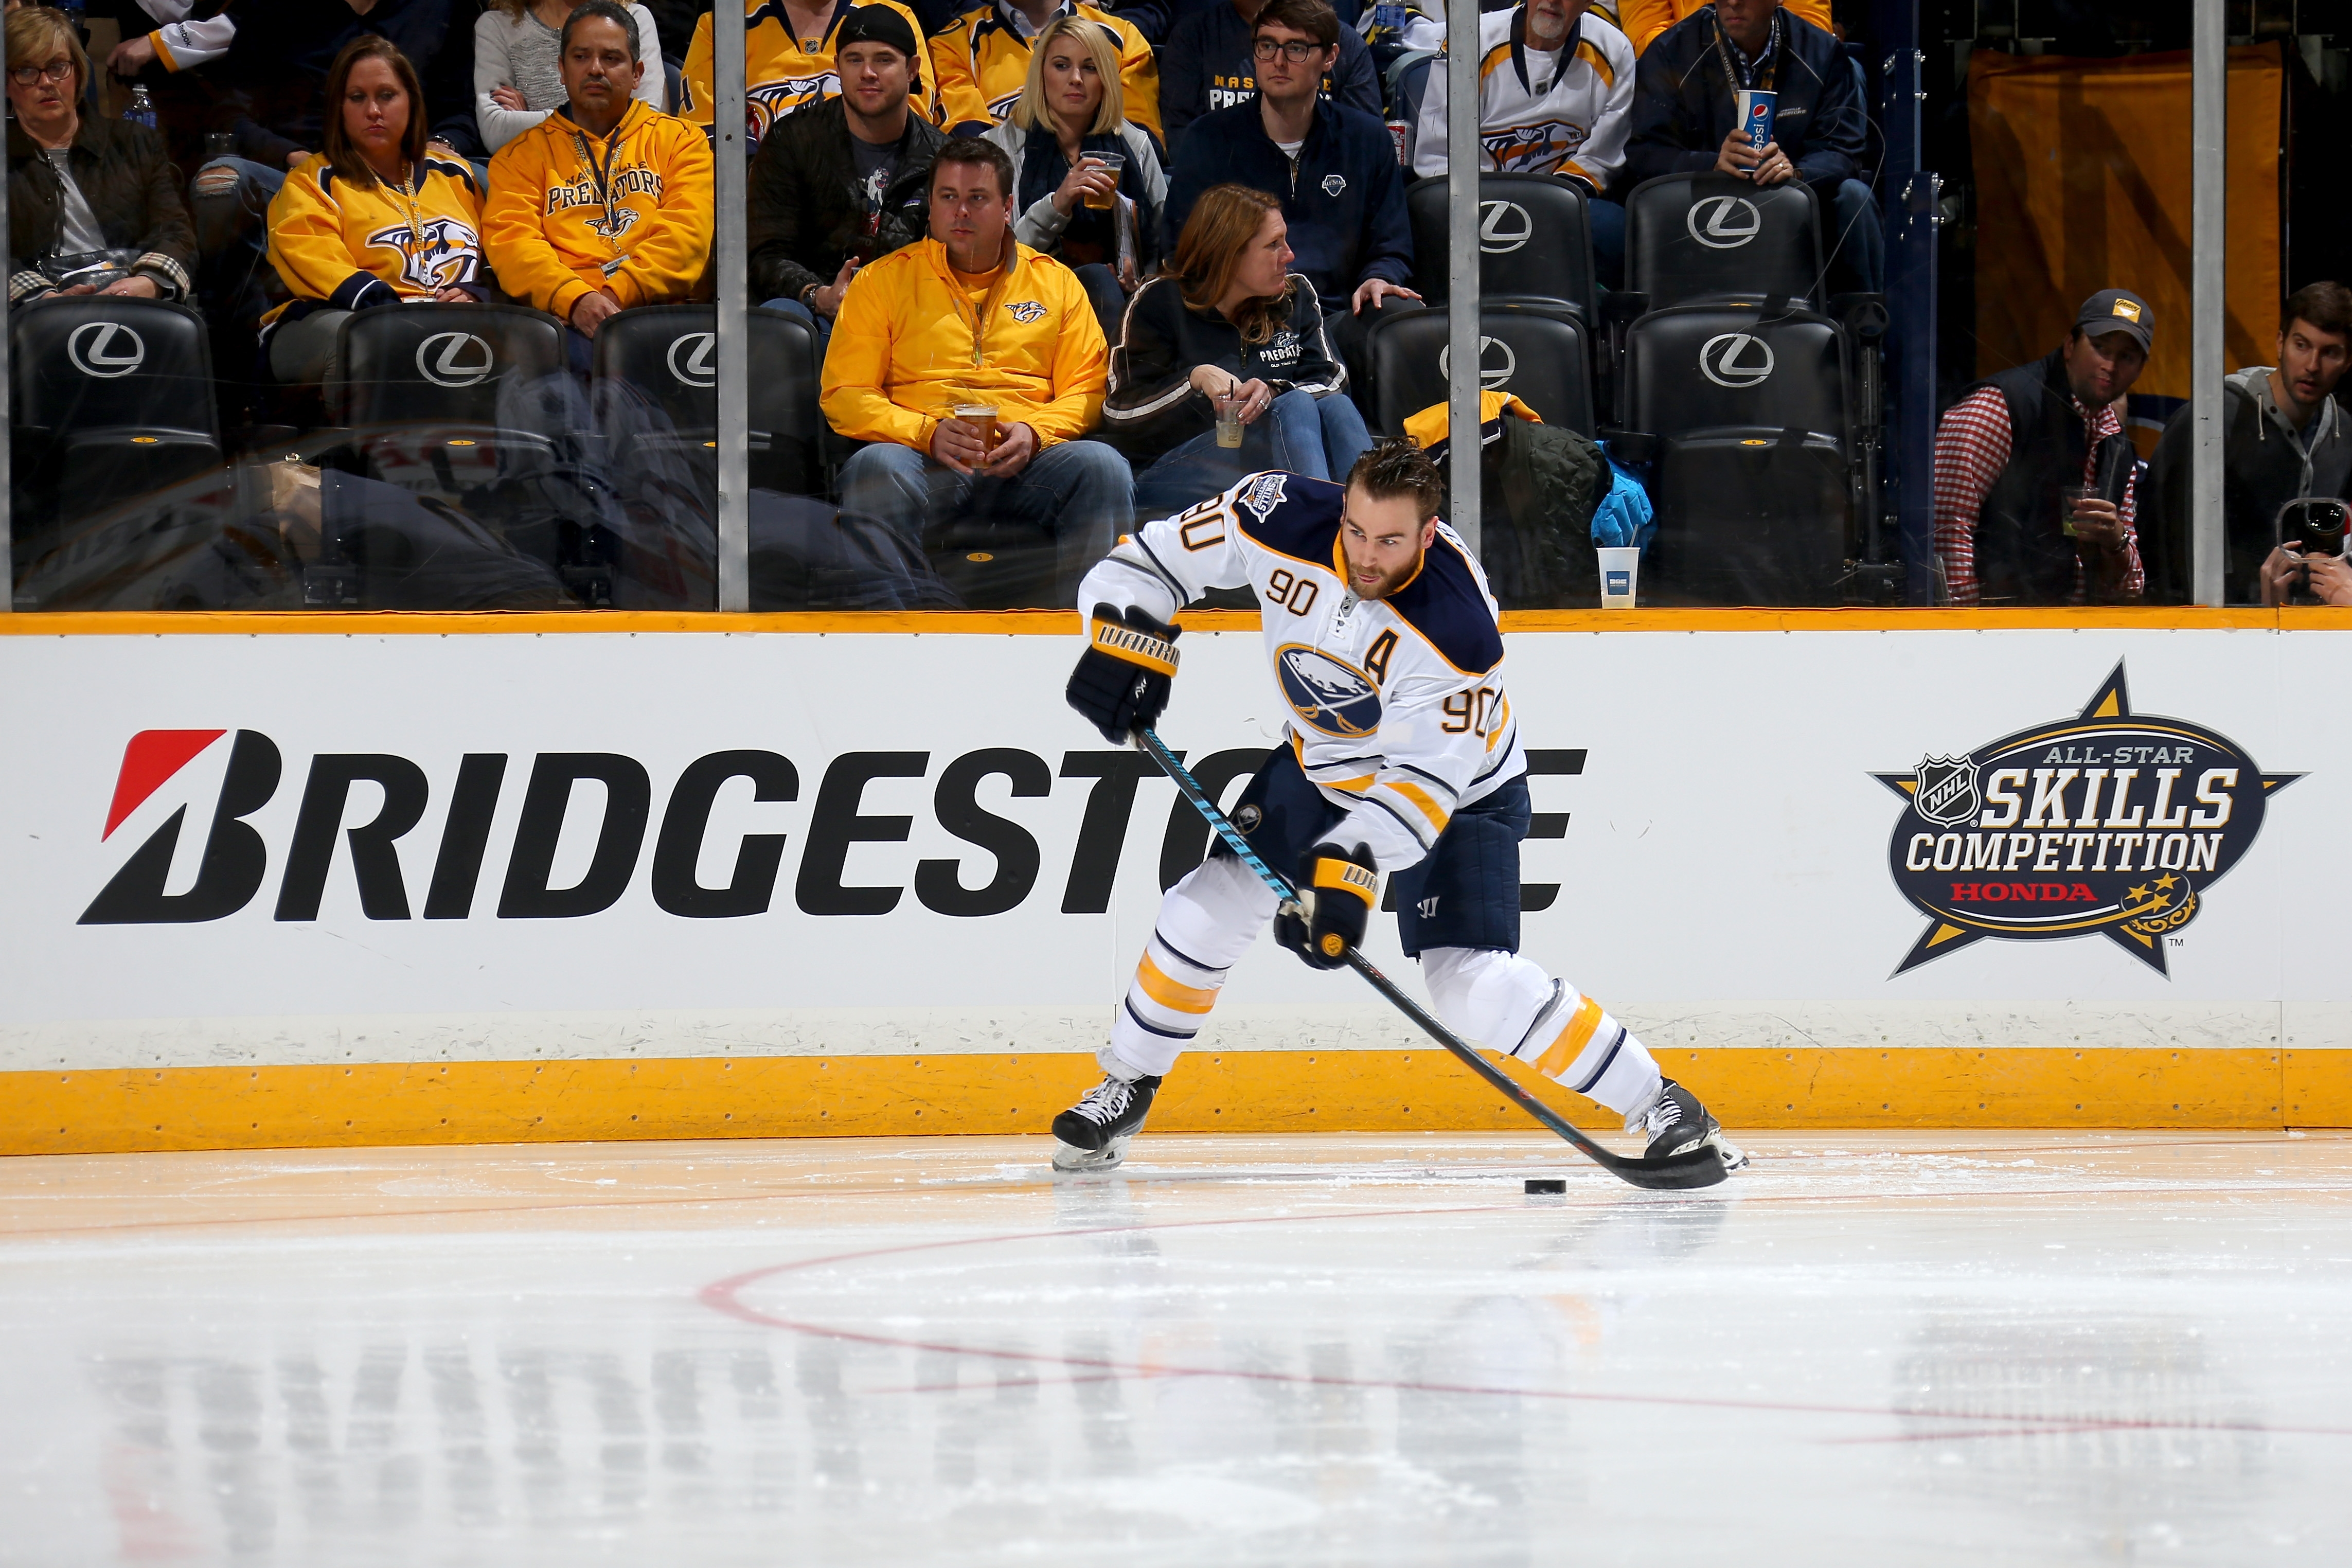 Ryan O'Reilly competes in the skills challenge relay during the NHL All-Star Skills Competition in Nashville.